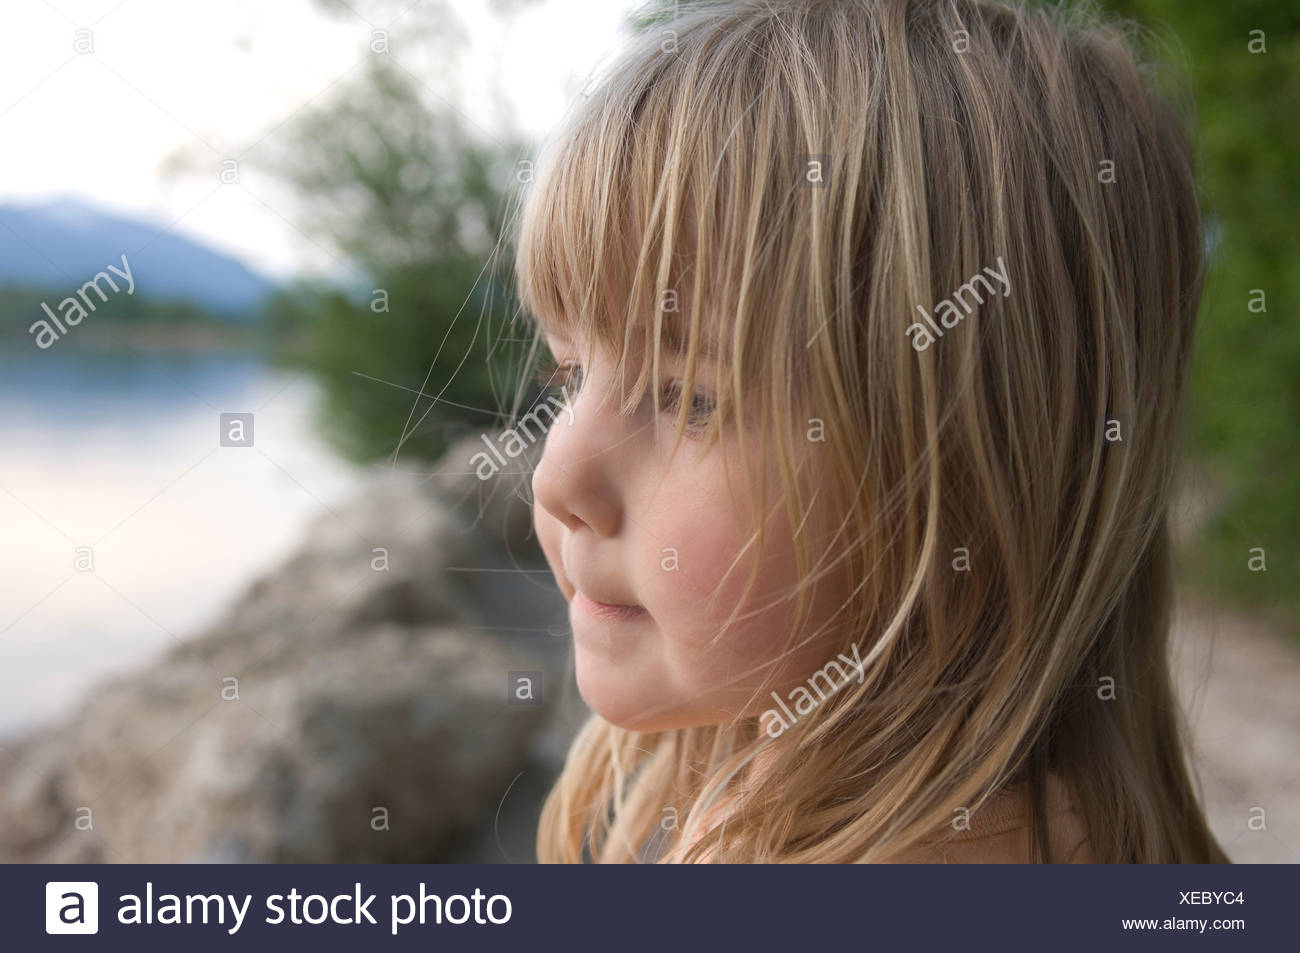 headshot of young girl standing on riverbank - Stock Image